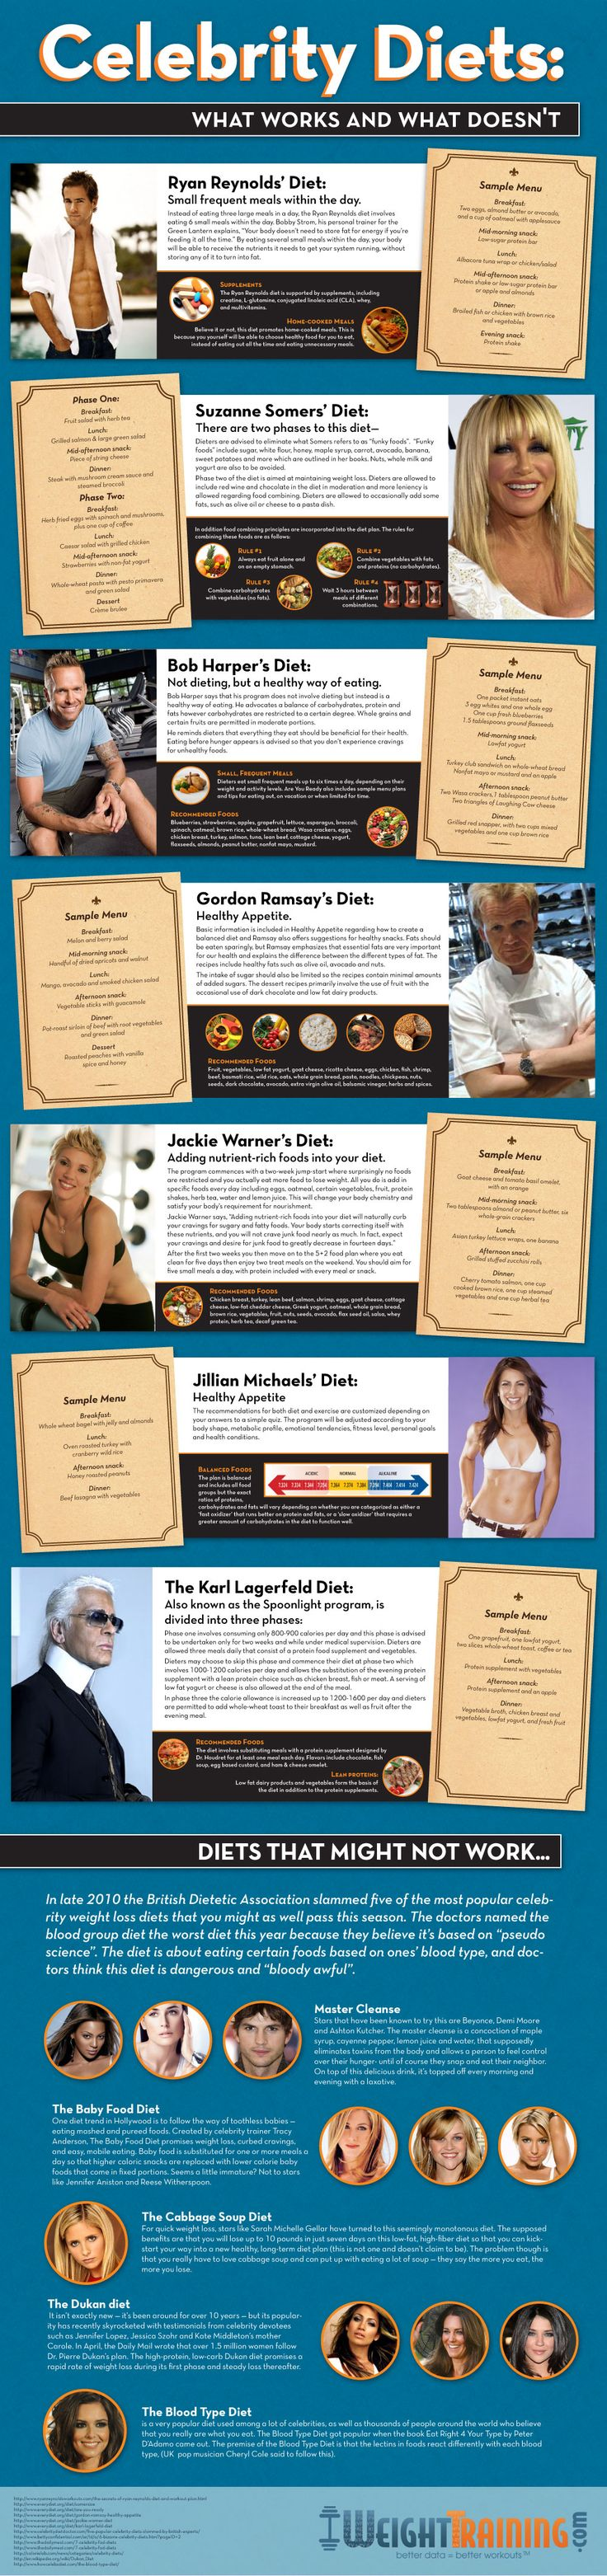 Of course Ryan Reynolds loves tons of home cooked meals. These are some interesting celebrity diets. :)